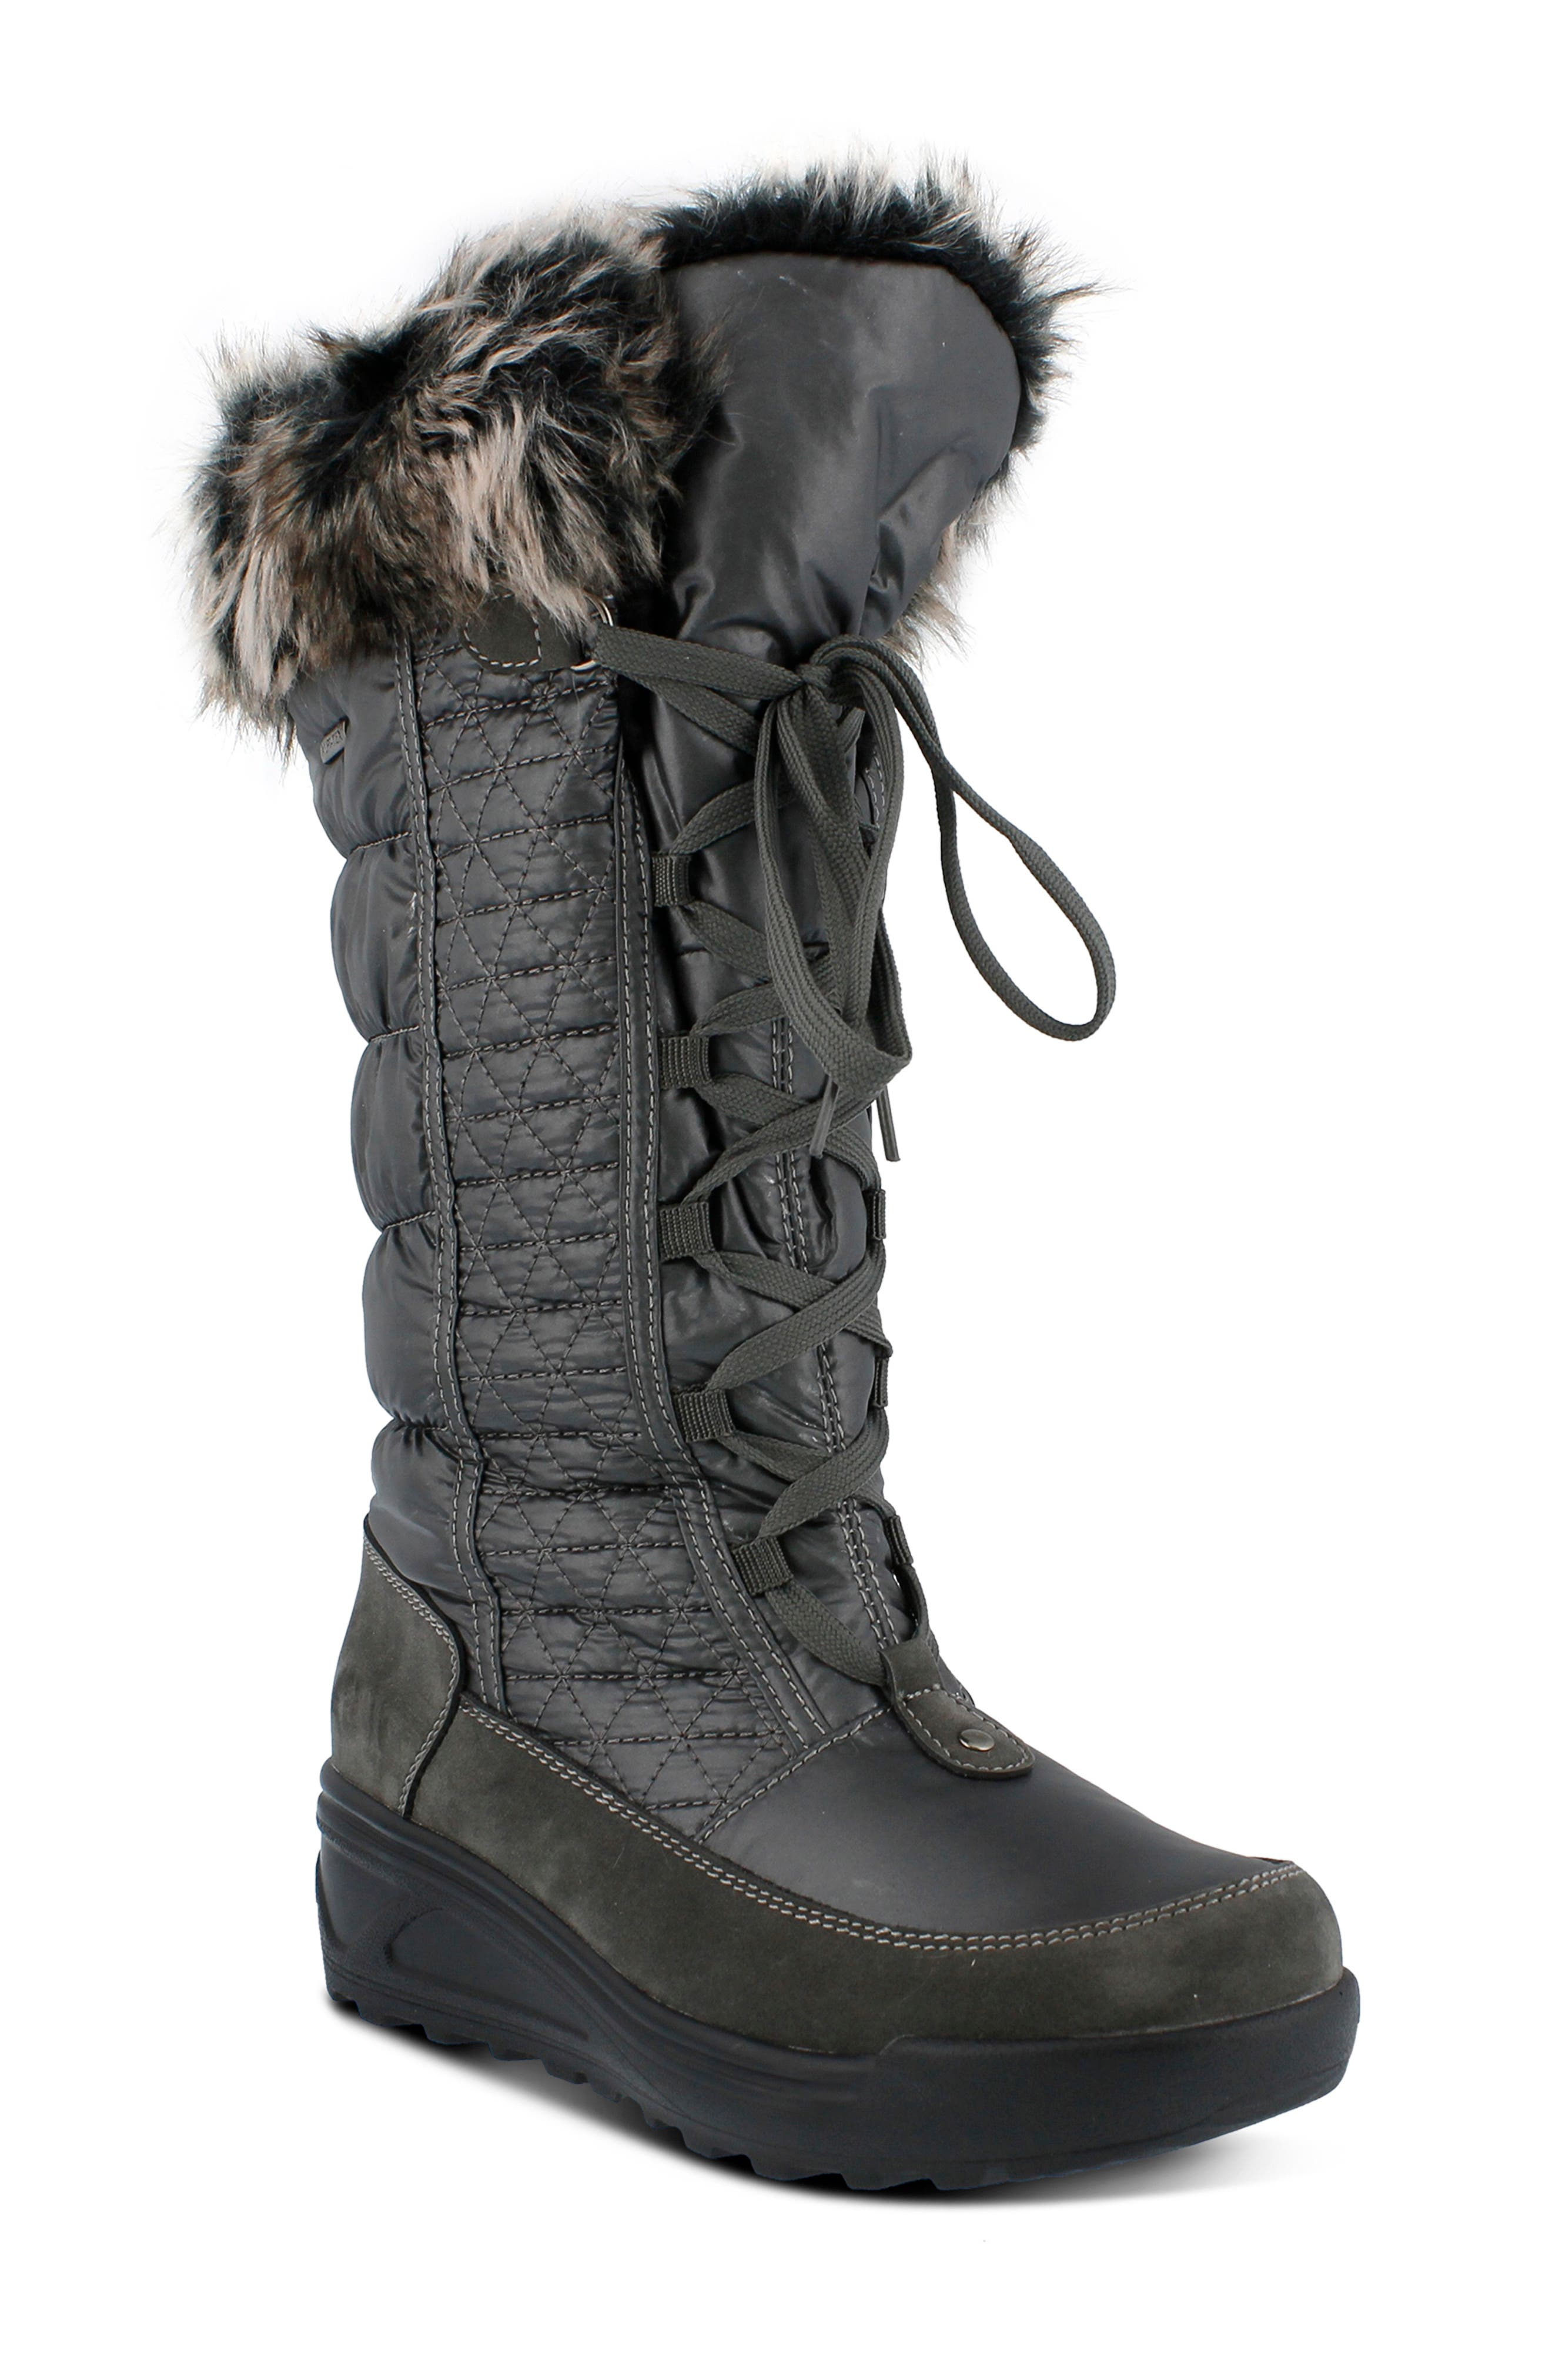 Spring Step Fotios Waterproof Faux Fur Boot - Grey